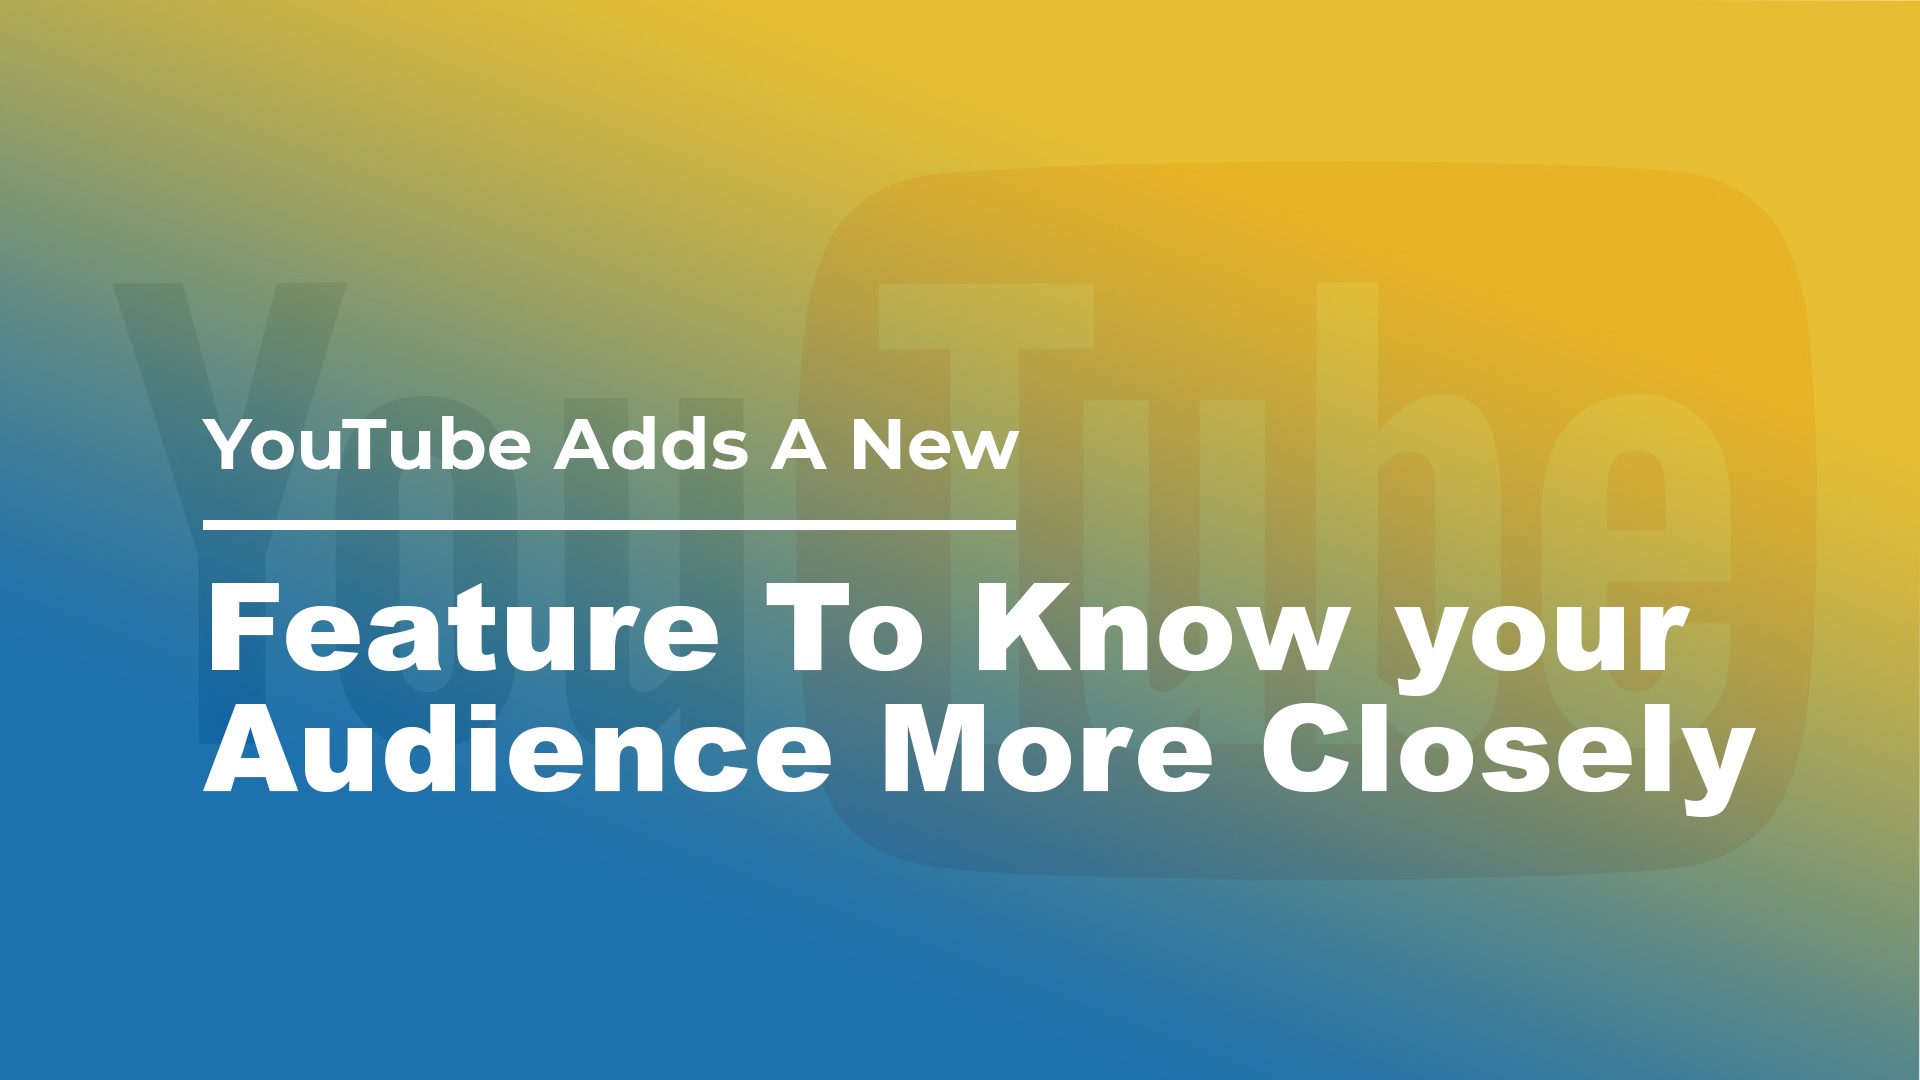 YouTube Adds A New Feature To Know your Audience More Closely